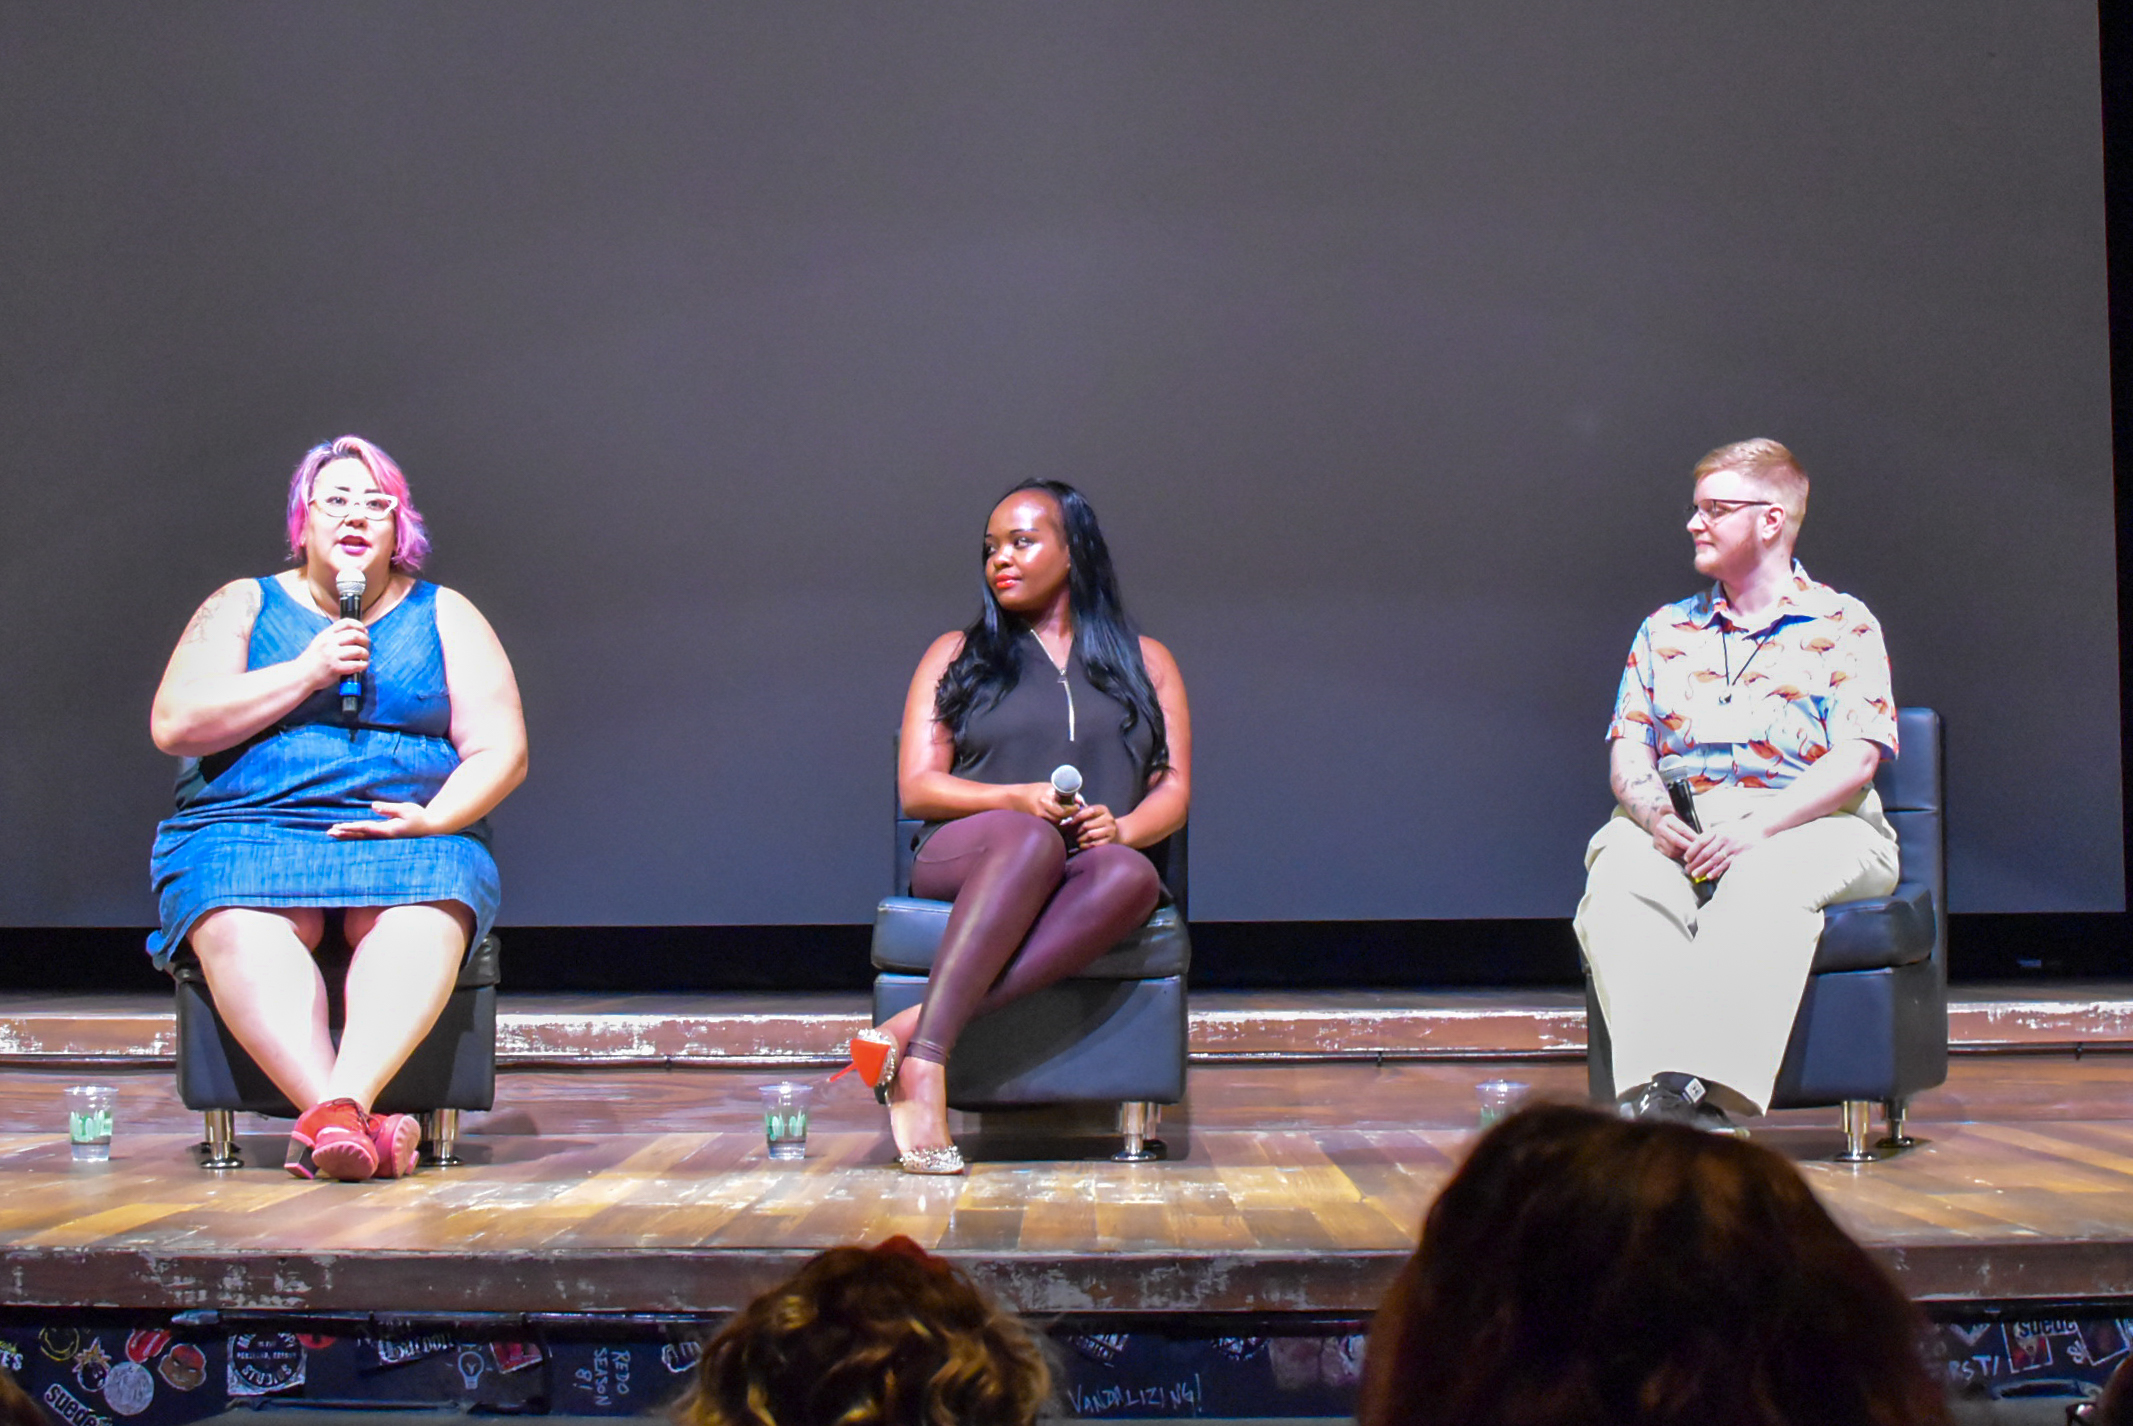 Tara Robertson speaking on stage with Esther John (right) and Sage Sharp (far right).JPG